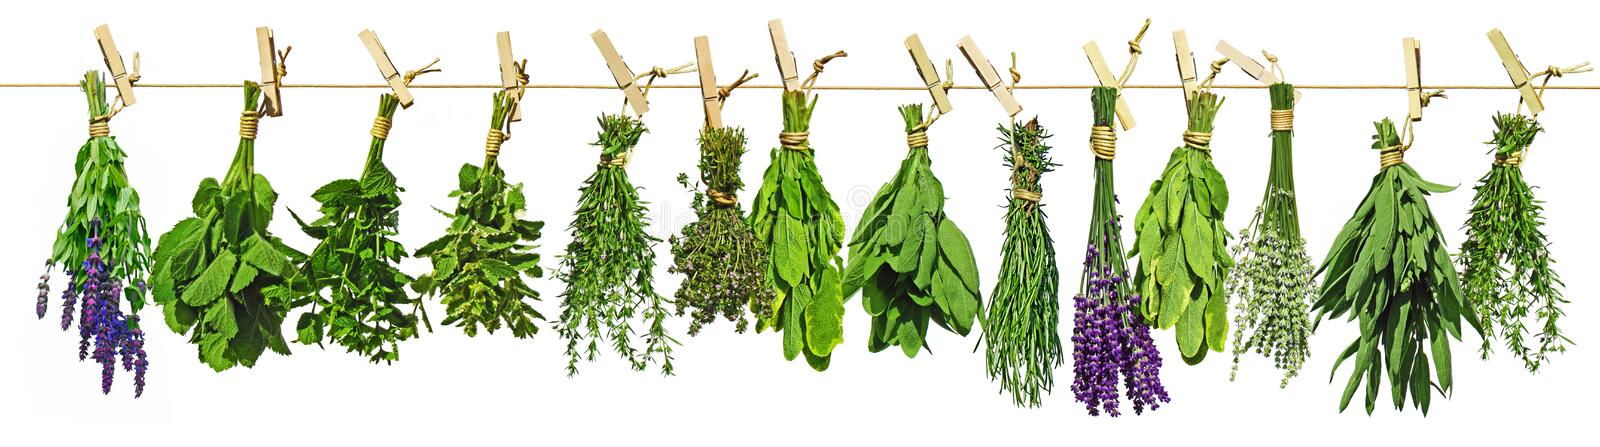 Drying Herbs royalty free stock images